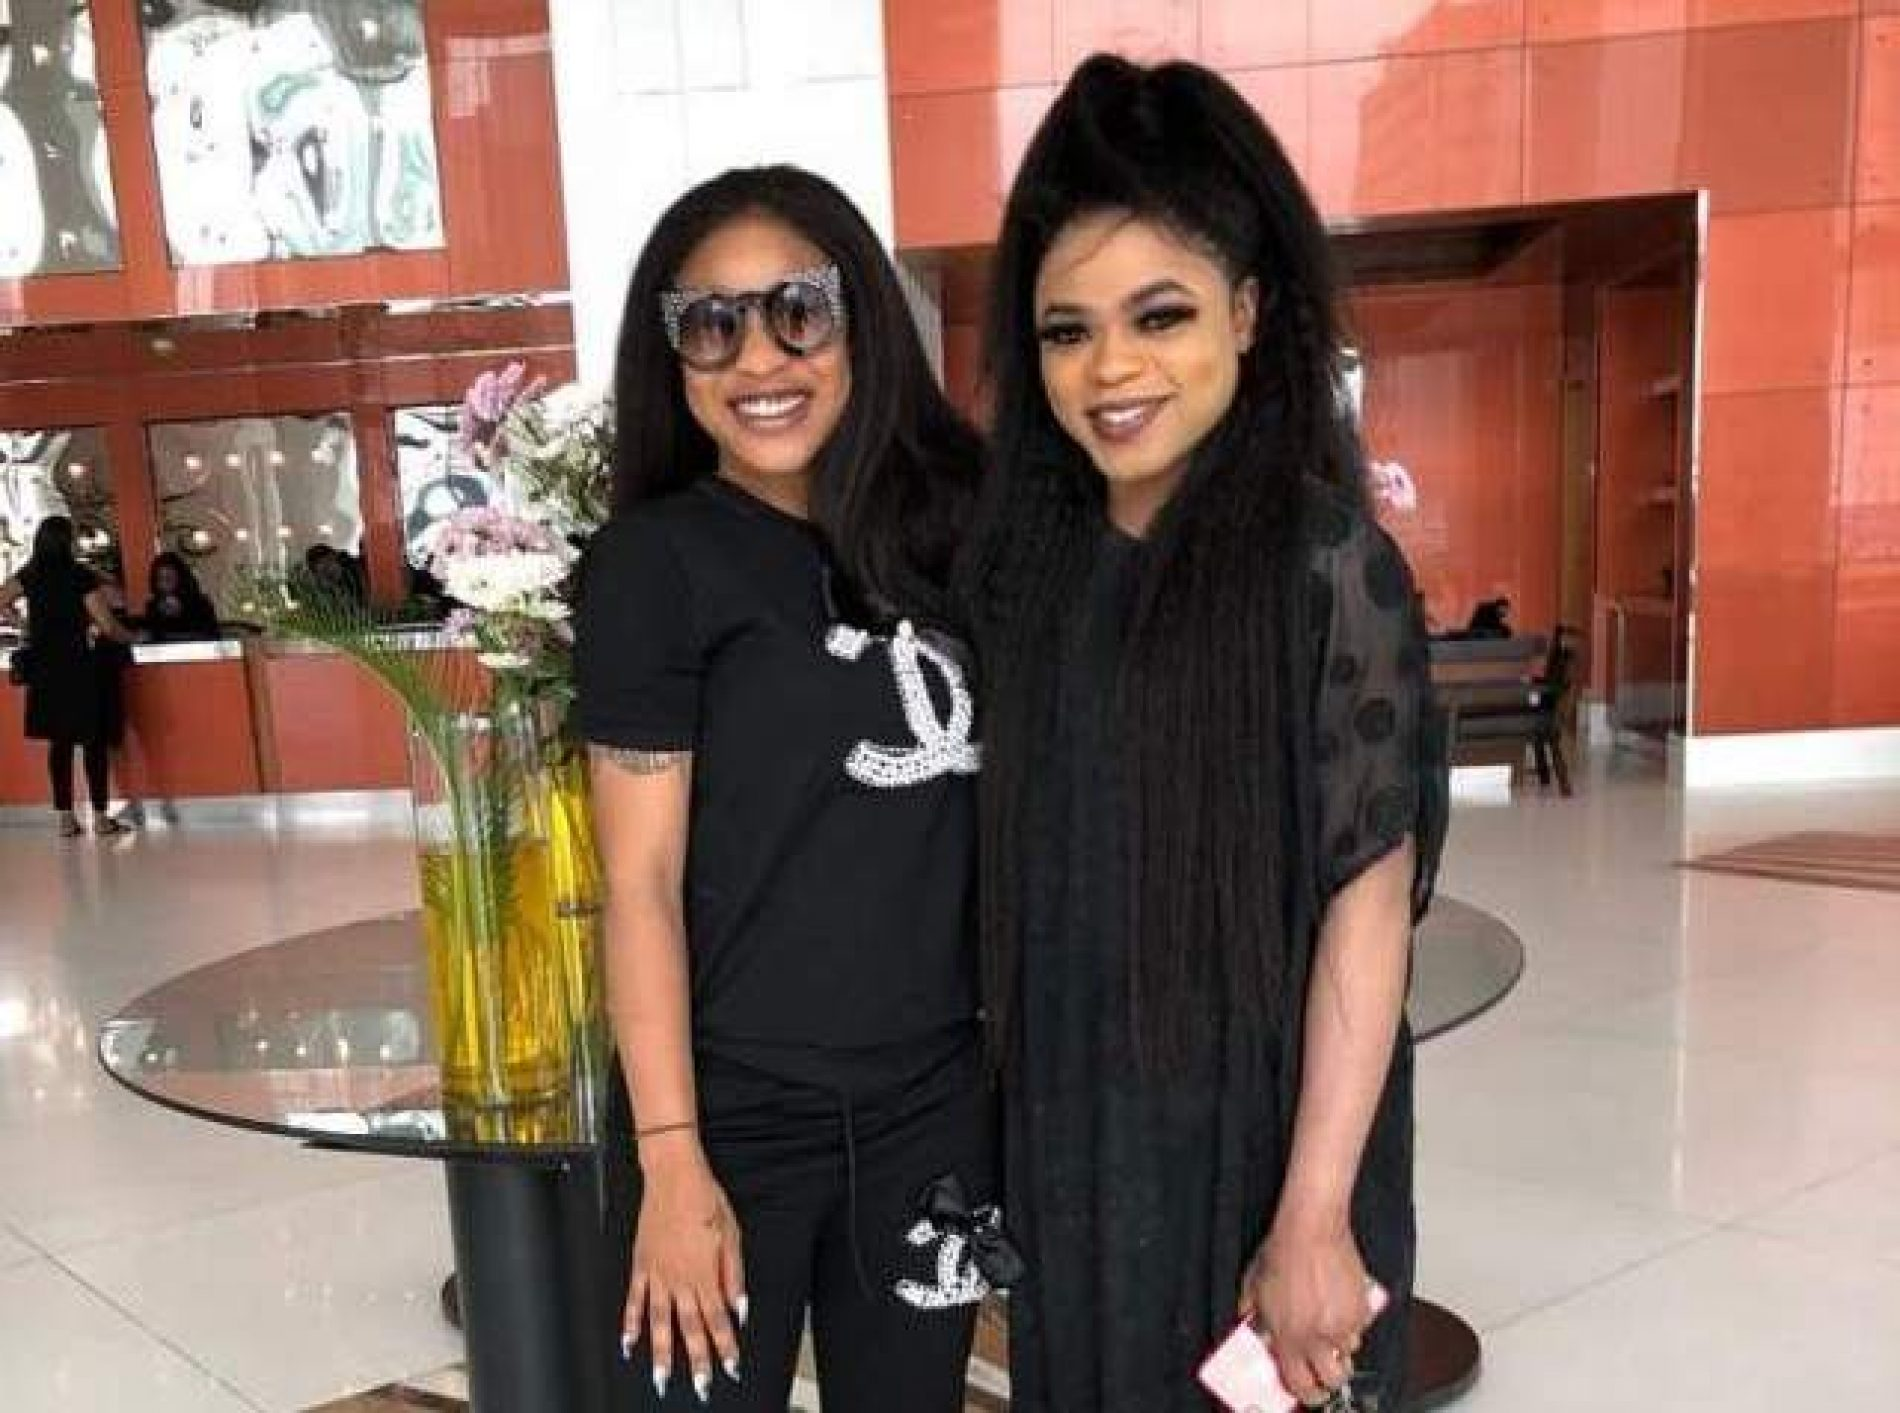 Tonto Dikeh and Bobrisky are Nigeria's latest celebrity besties